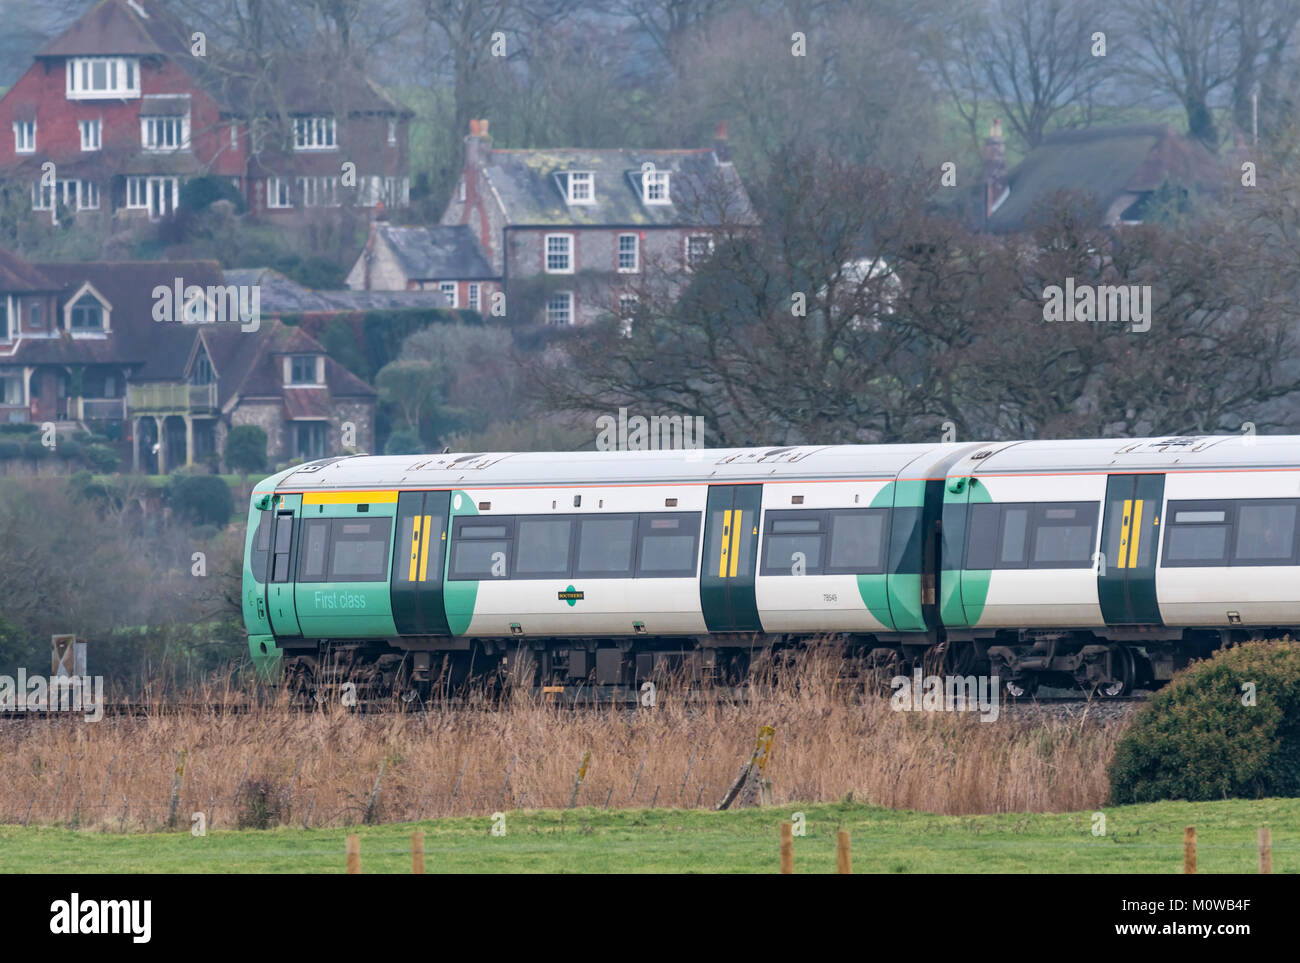 Southern Rail train roulant à travers la campagne du district de South Downs Arun dans West Sussex, Royaume Photo Stock